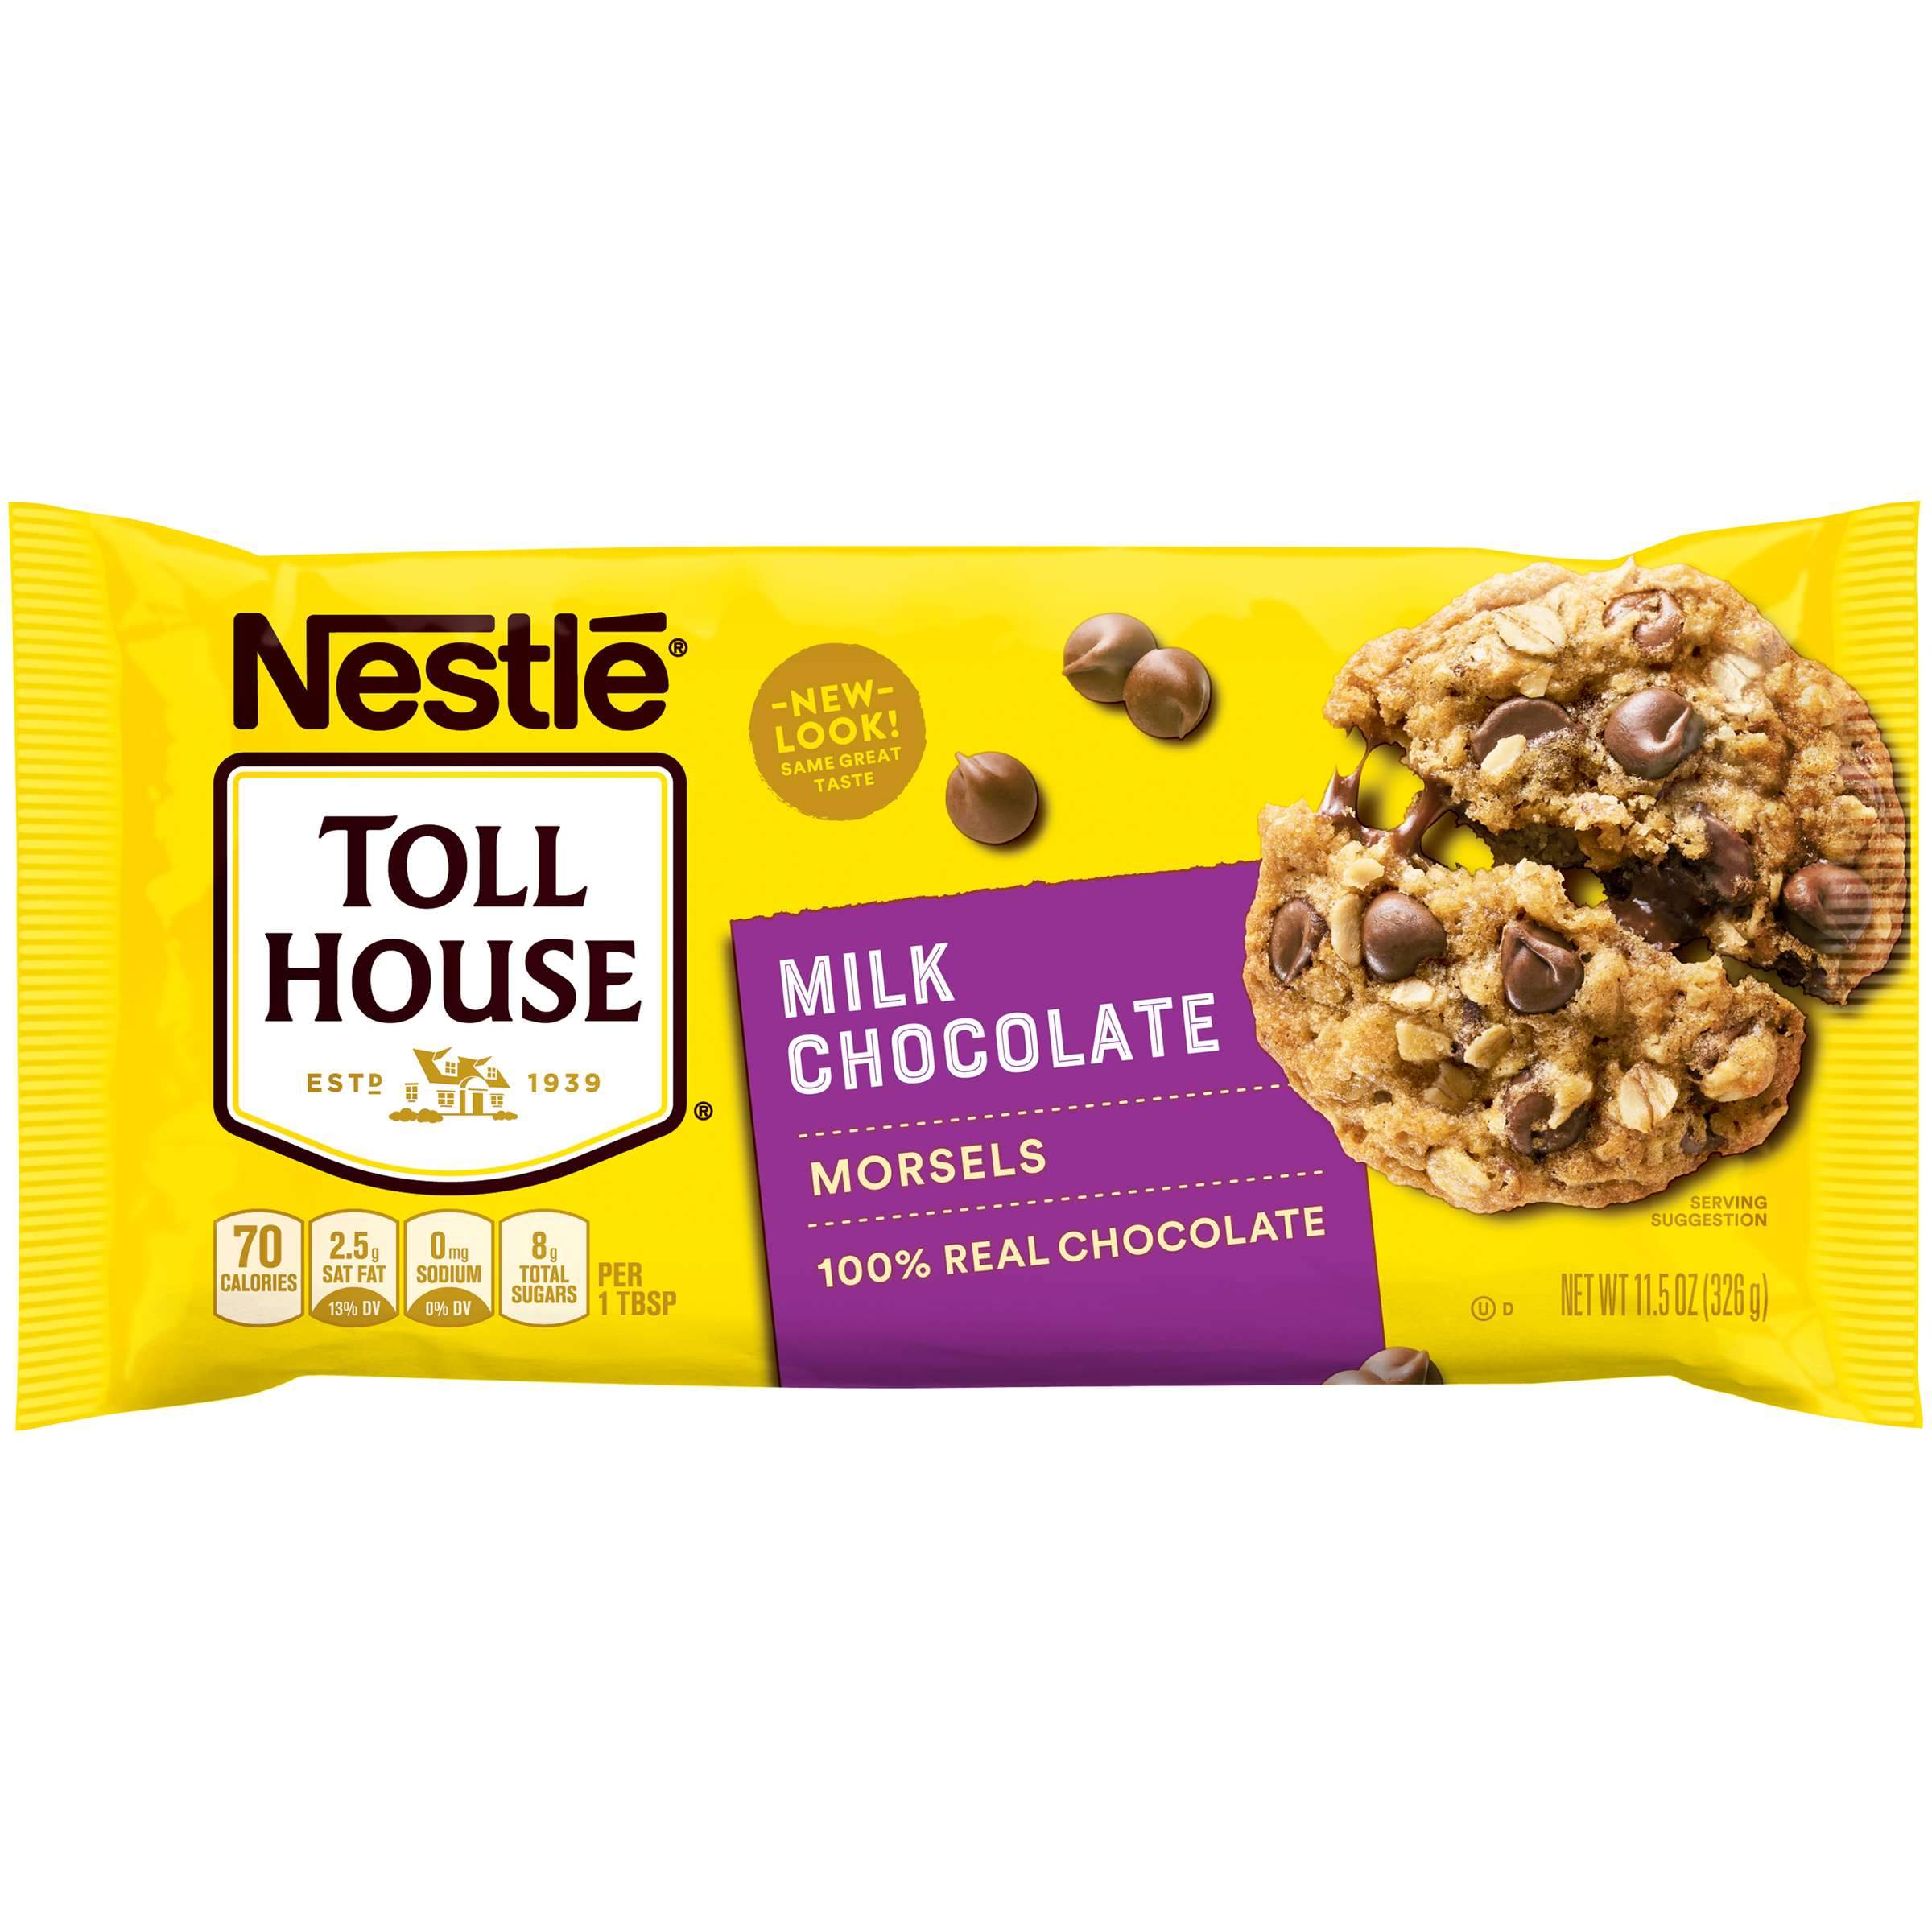 Nestlé Toll House Baking Morsels Toll House Milk Chocolate 11.5 Ounce